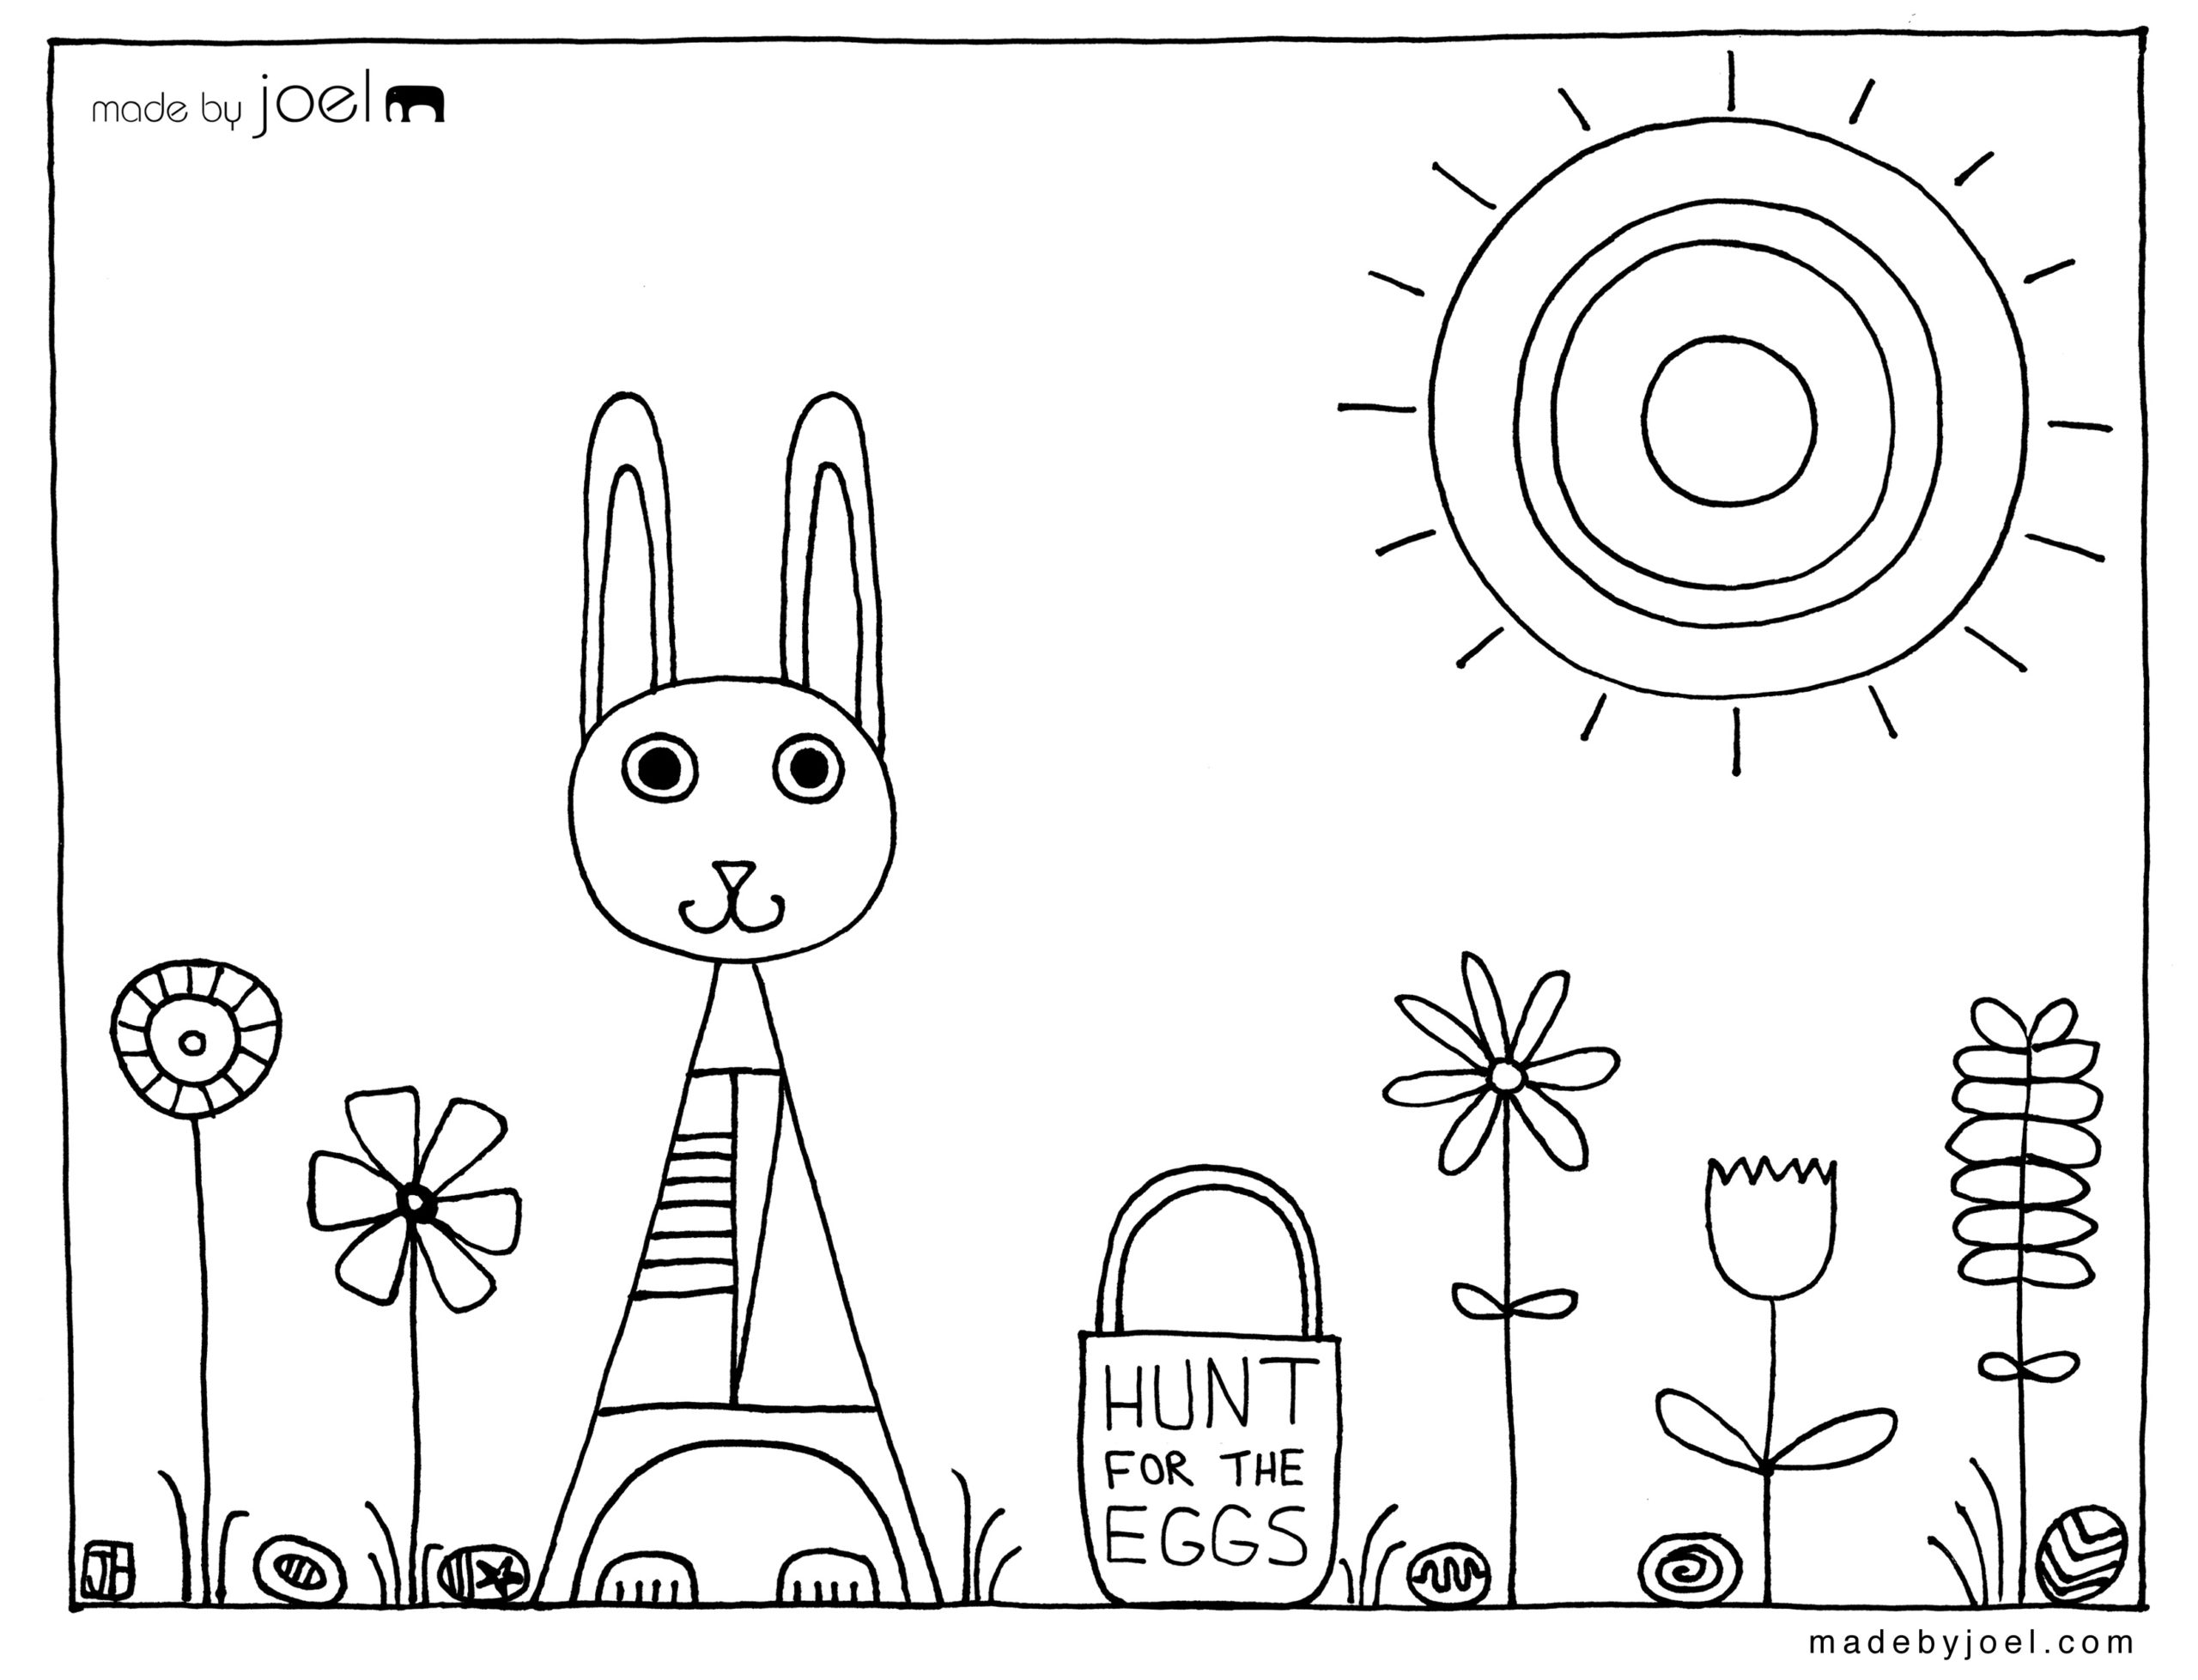 Years Made By Joel Sky And Night Worksheets Easter Coloring Sheet For The  Eggs Fraction Games Year Printable Number Puzzles Preschoolers Easy Math  Problems 5th Graders Day Sky And Night Sky Worksheets